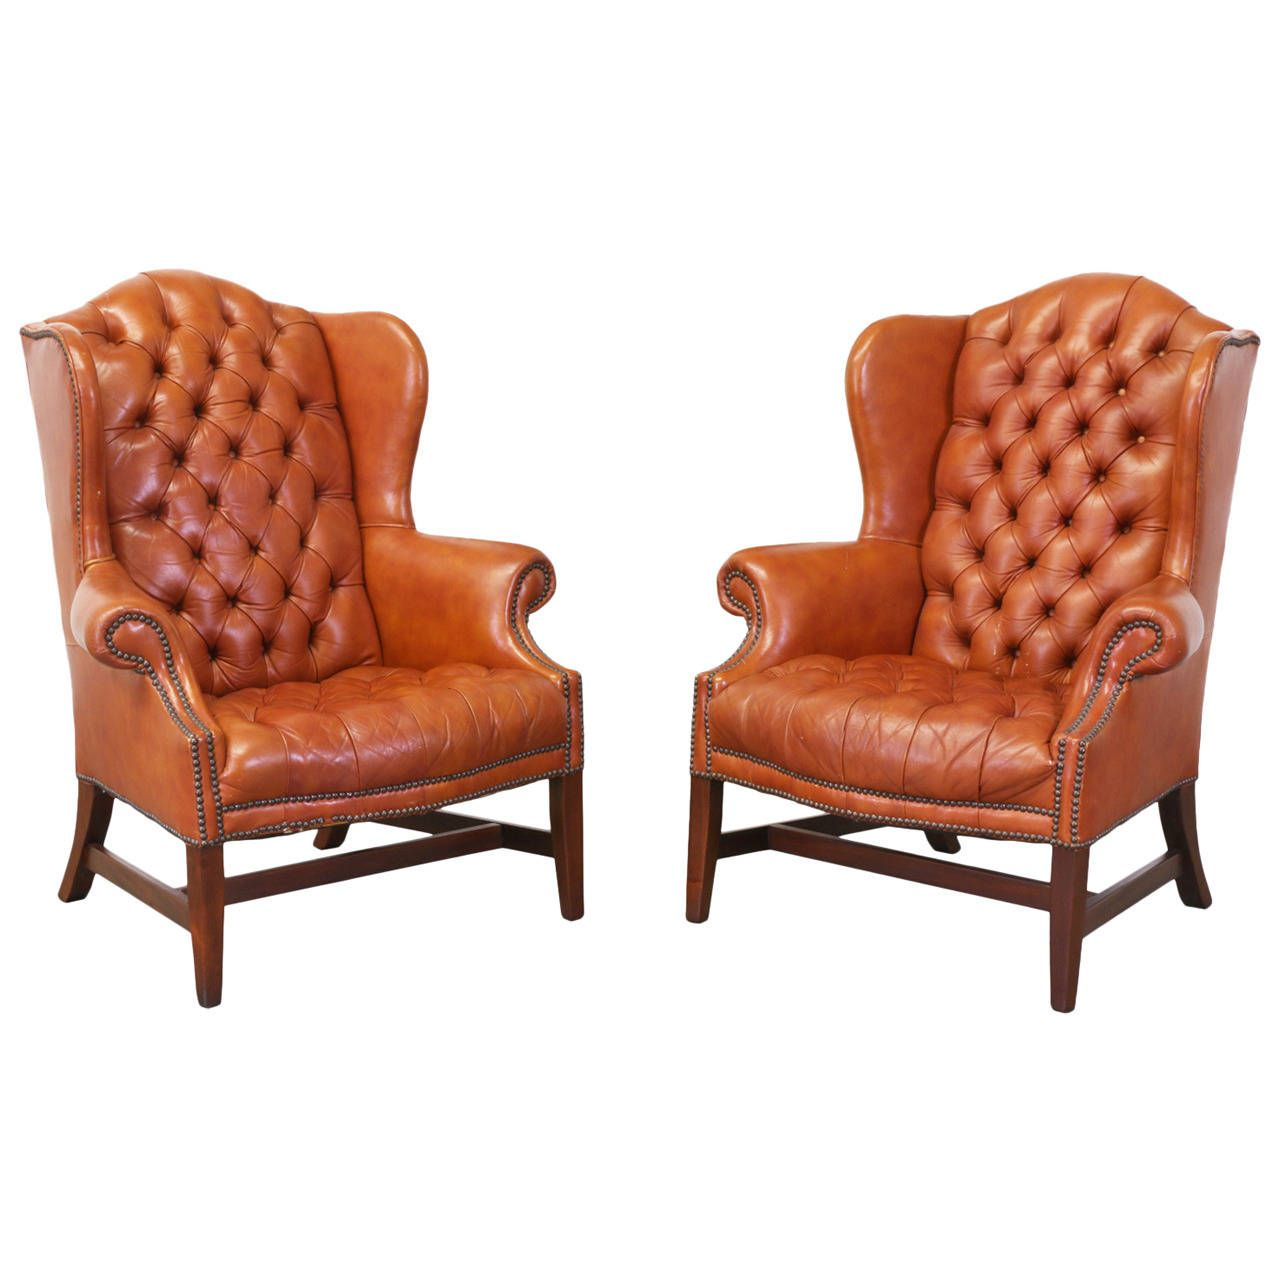 Brass Tacked Tufted Leather High Back Wing Chairs | From a ...